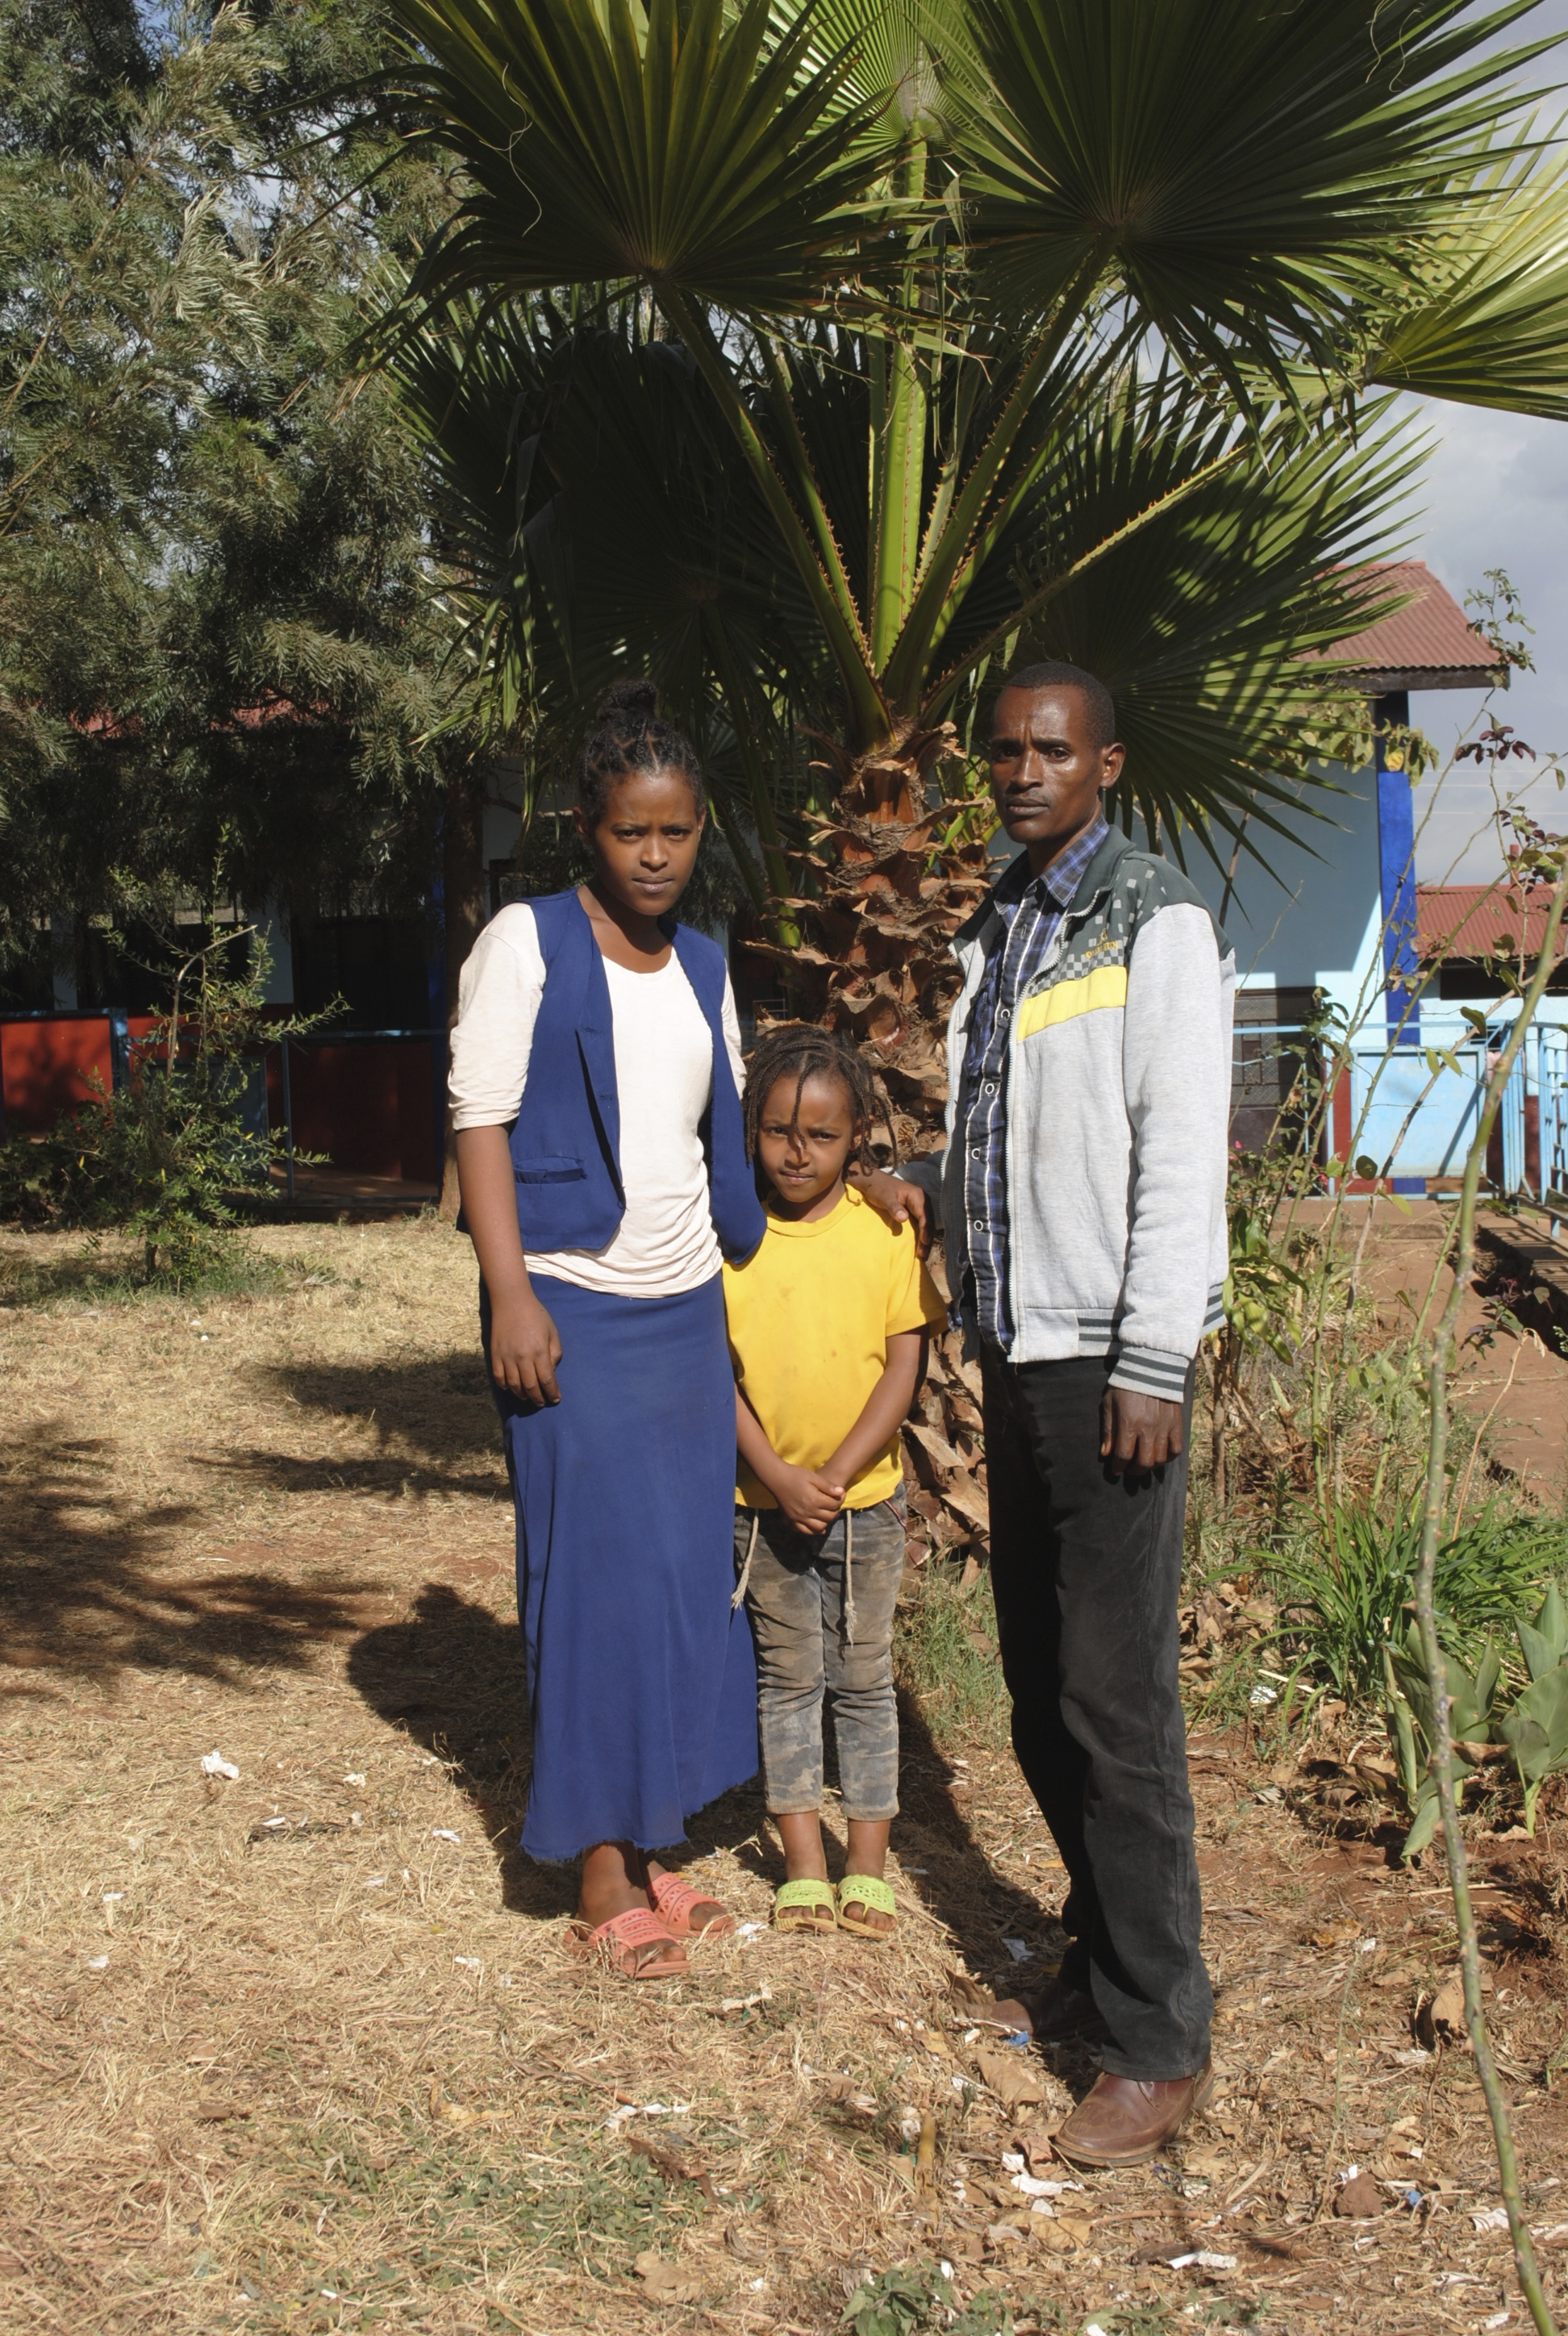 Wubalem, her father, and her sister Tiblet at Abba Pascal Girls School